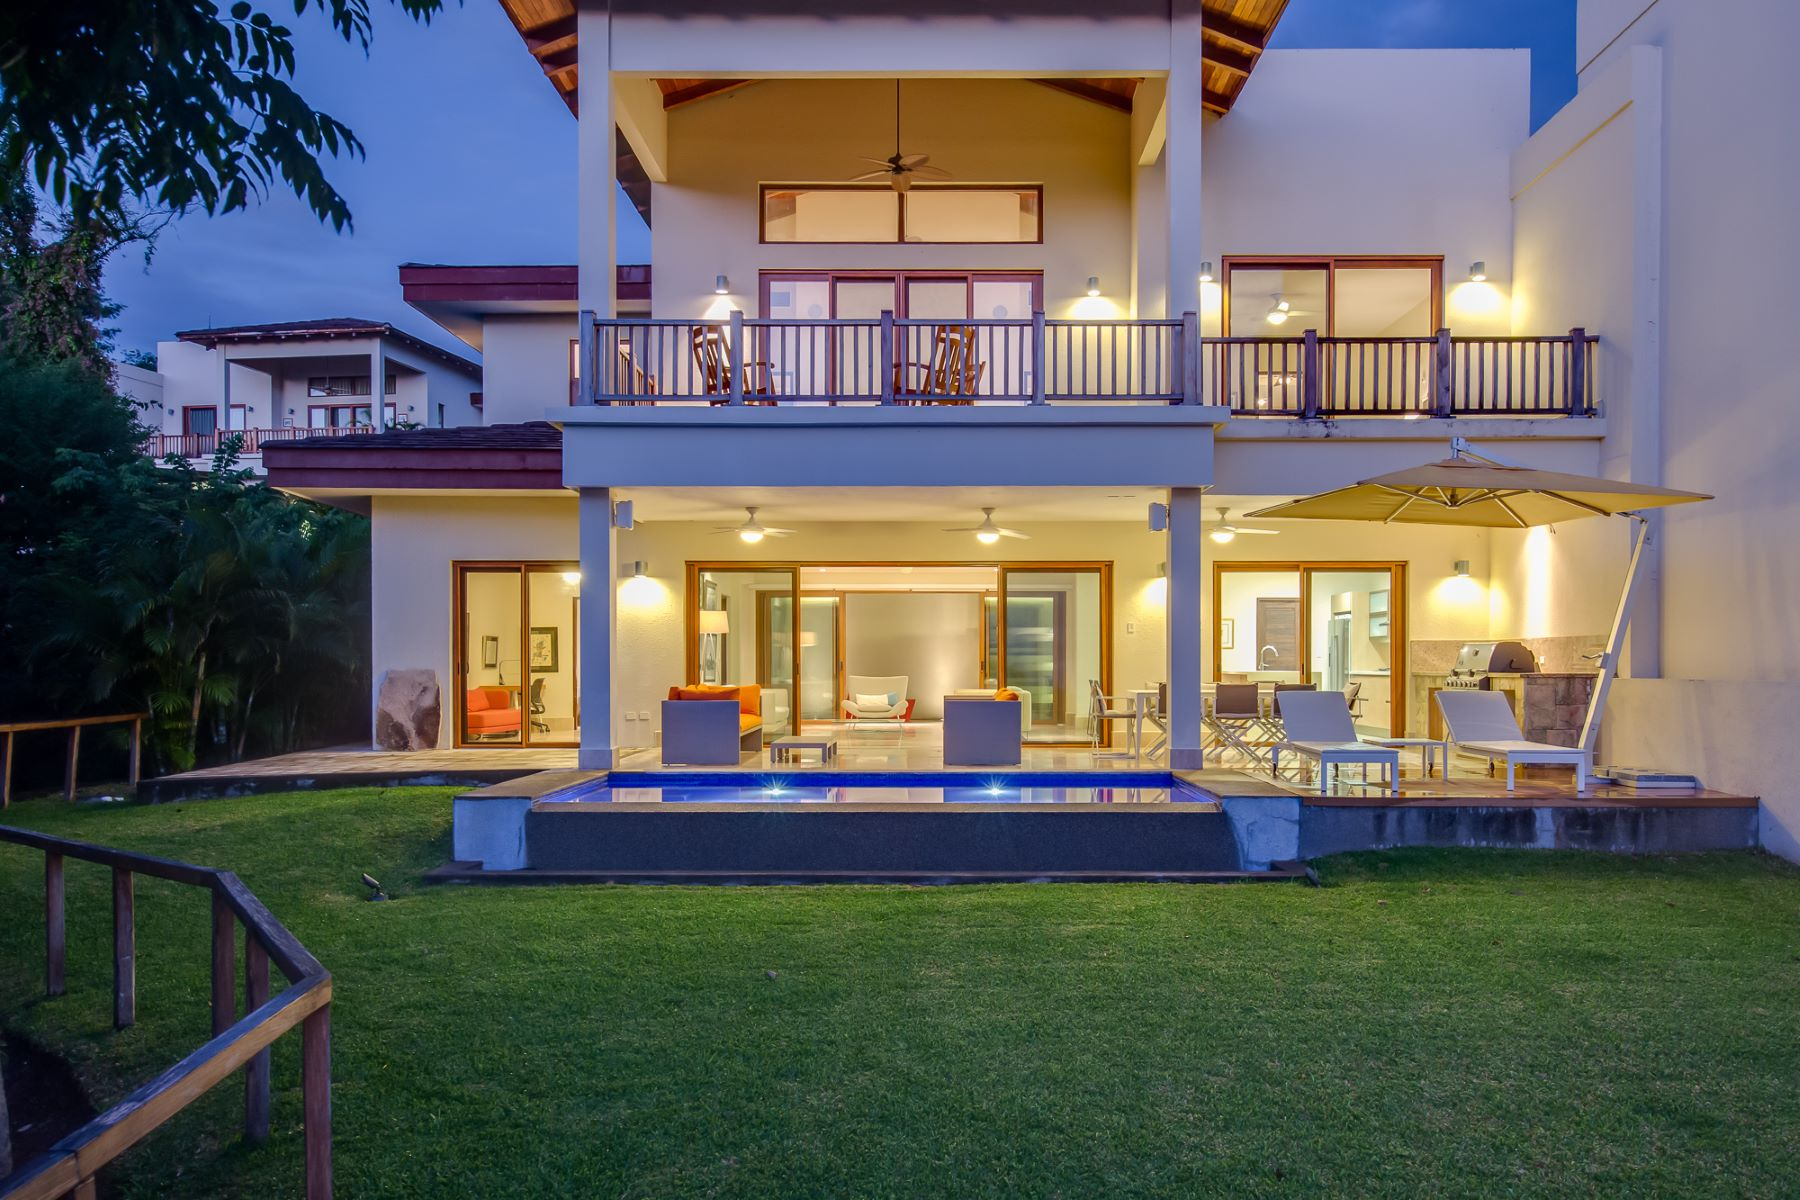 Single Family Home for Sale at Verdemar Villa 20 a Luxurious Ocean View Residence Other Rivas, Rivas, Nicaragua